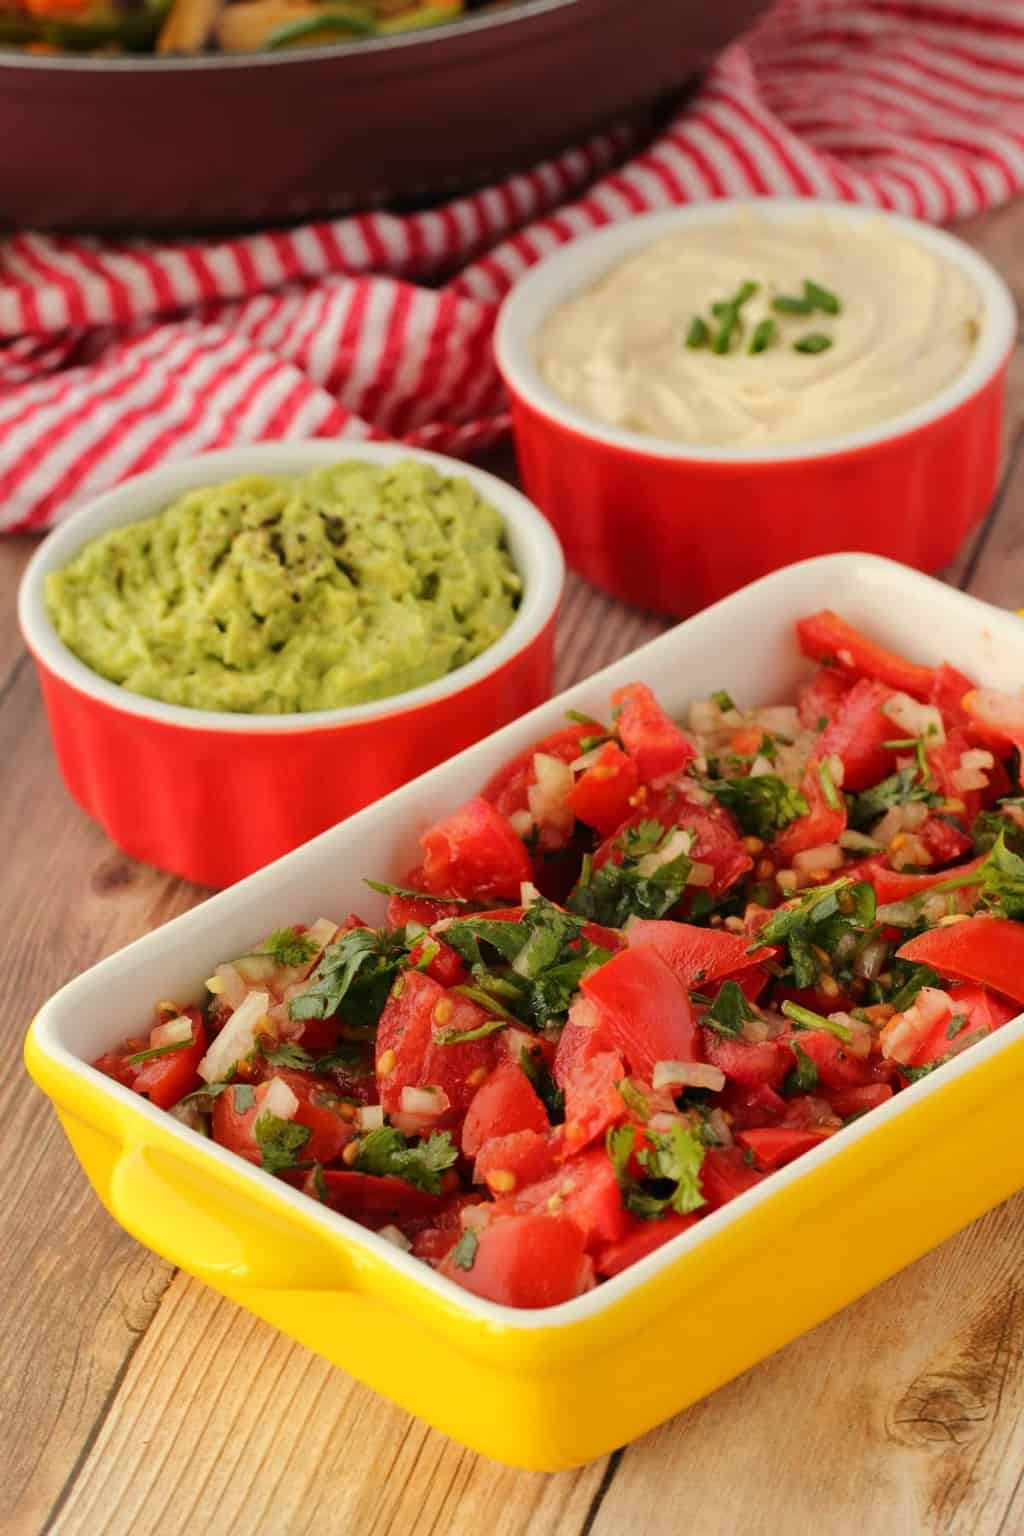 Tomato salsa, guacamole and vegan sour cream for veggie fajitas.